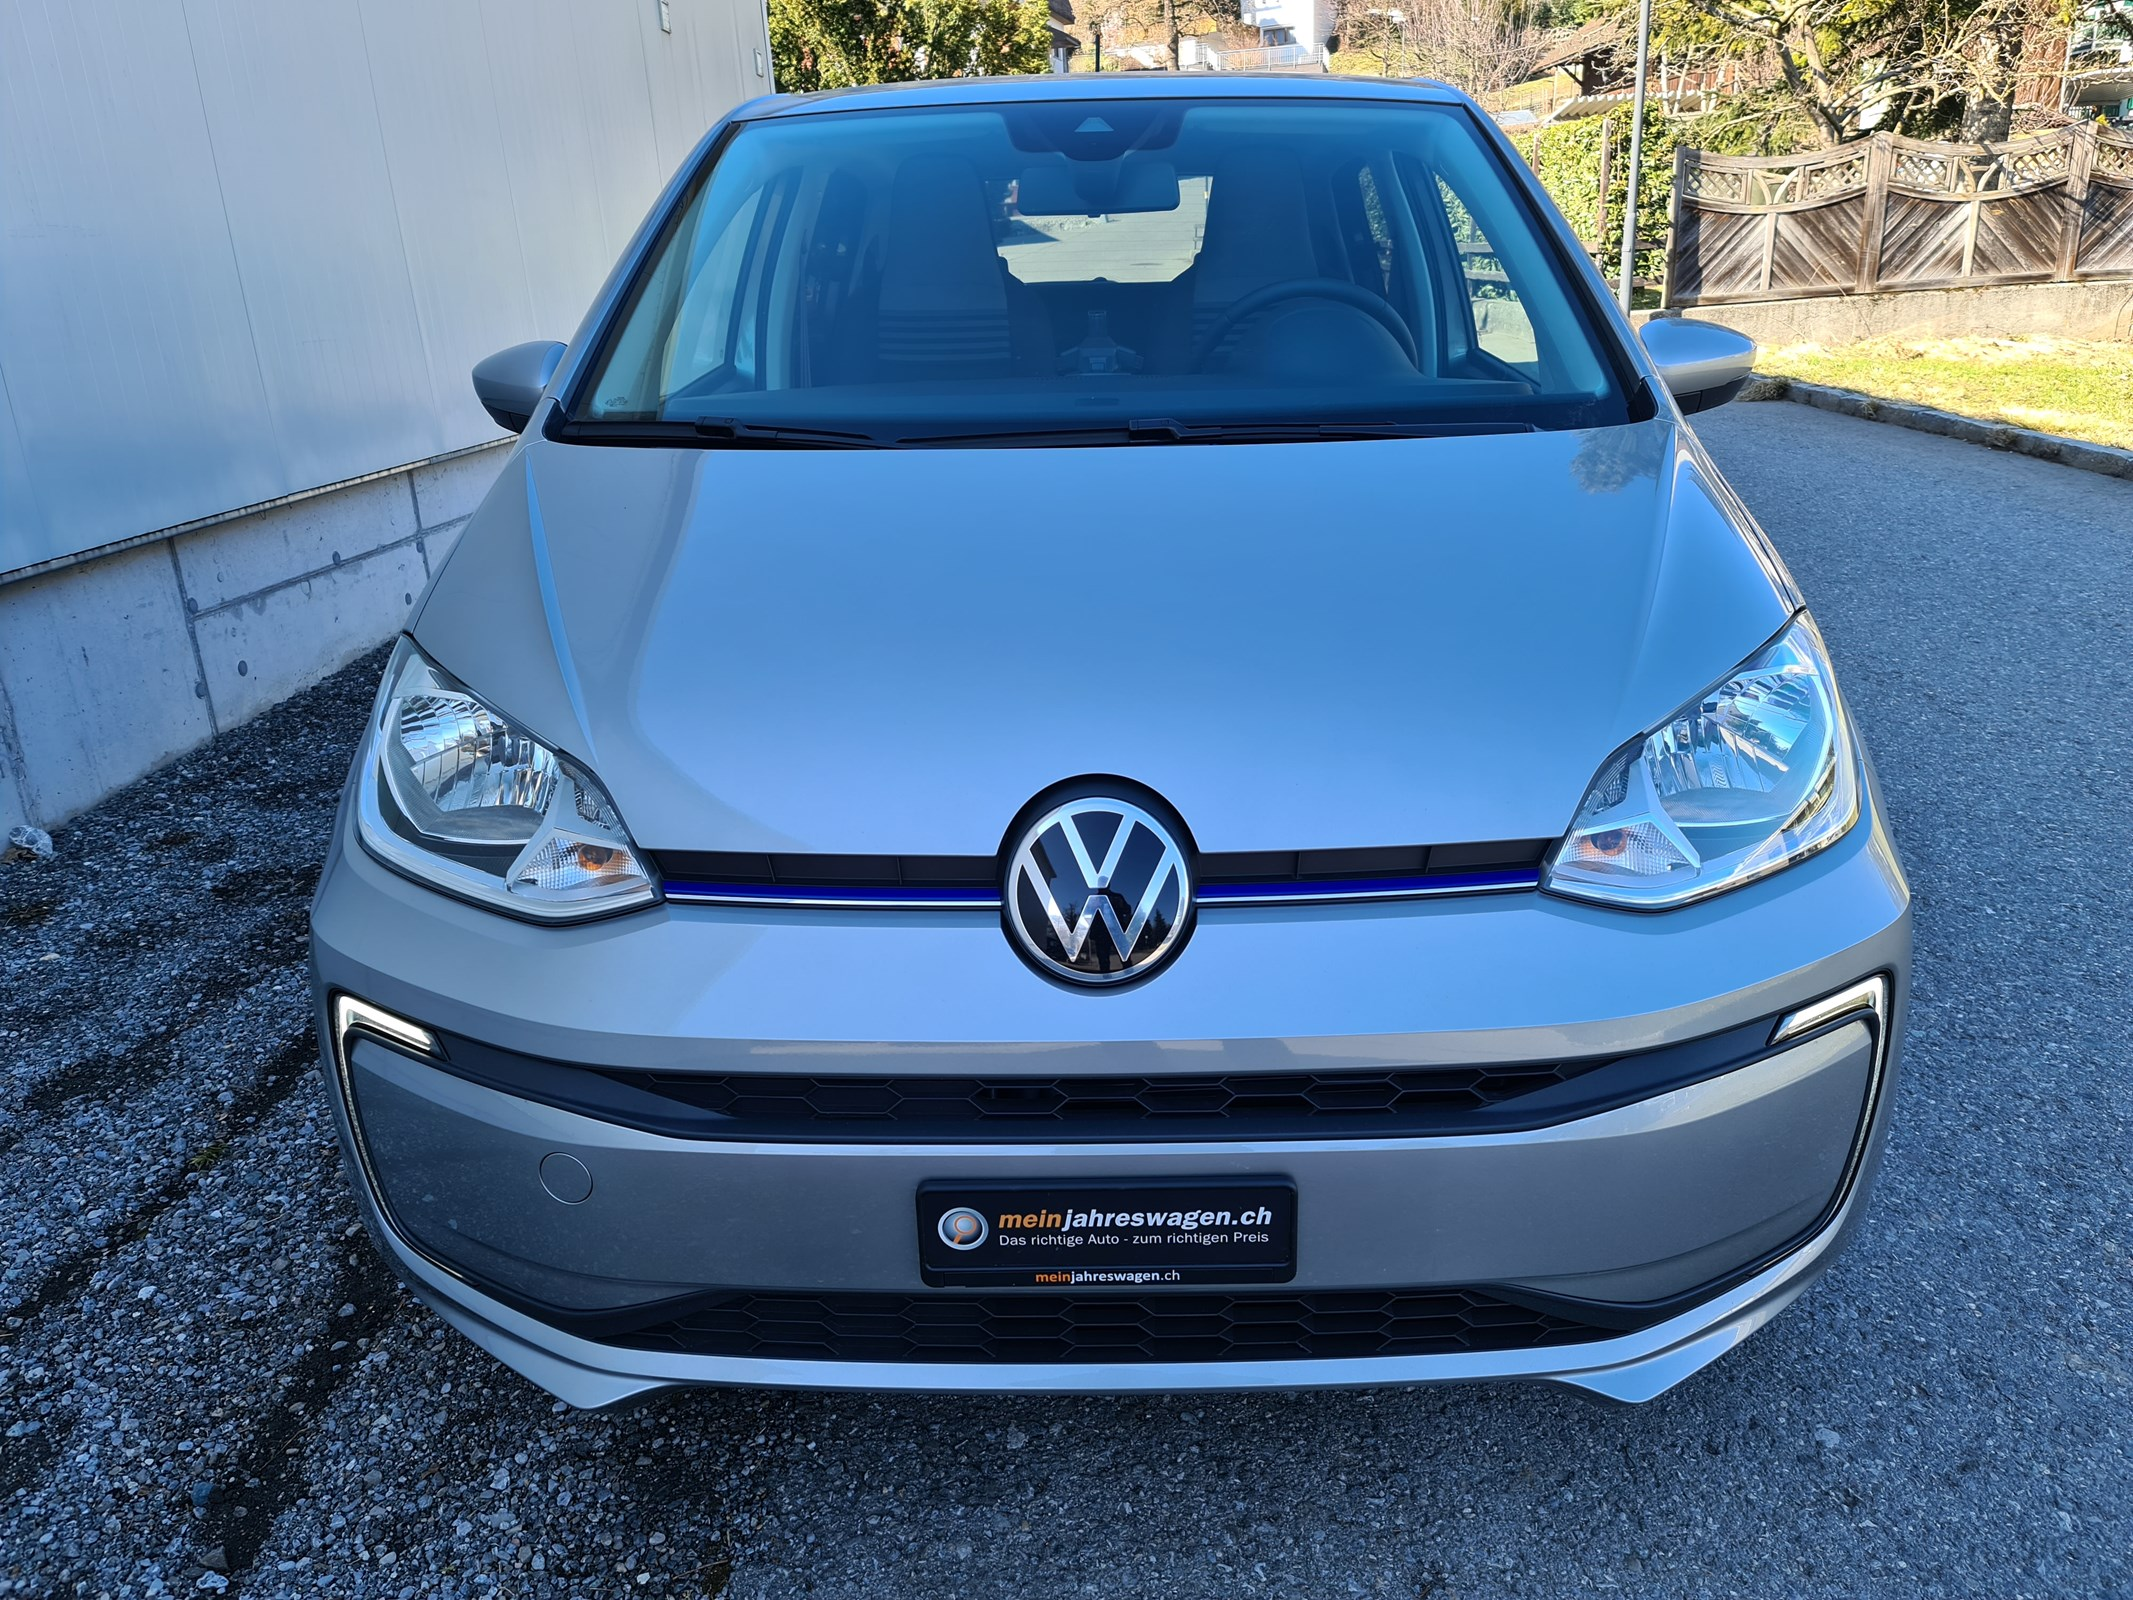 VW e-Up voll